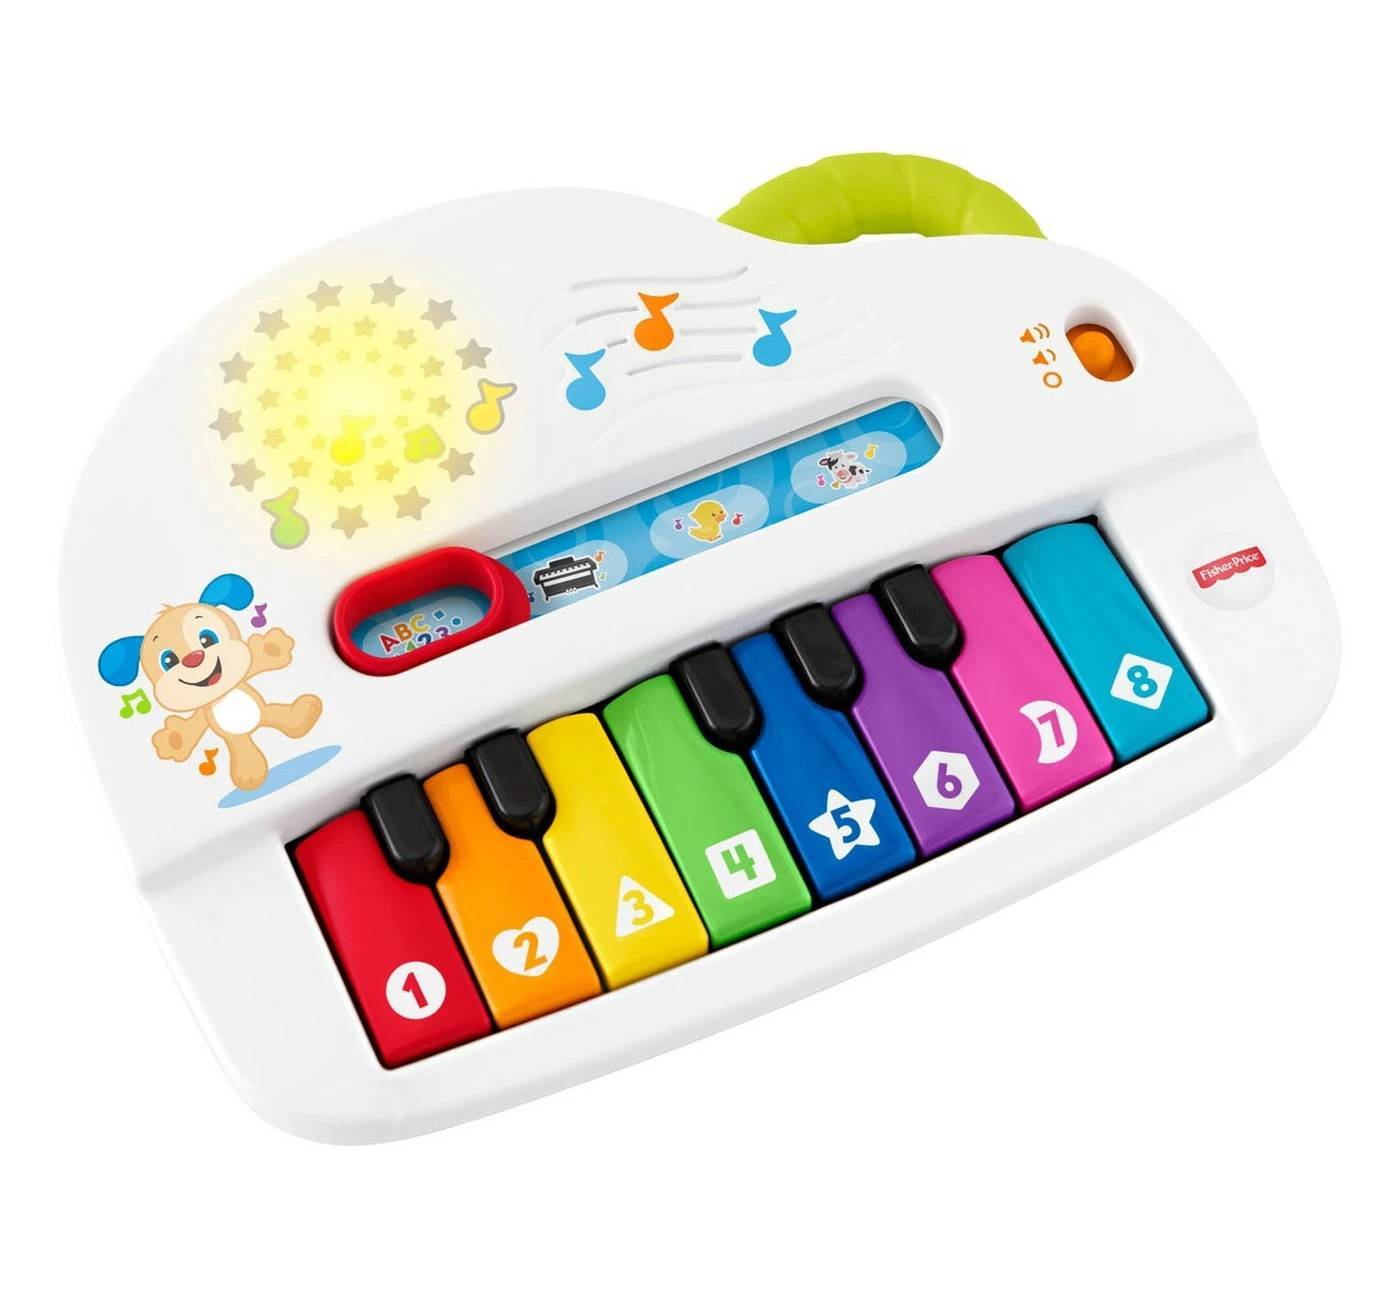 Silly Sounds Light-up Piano Fisher-Price - Mattel GFX34 - Noy Brinquedos